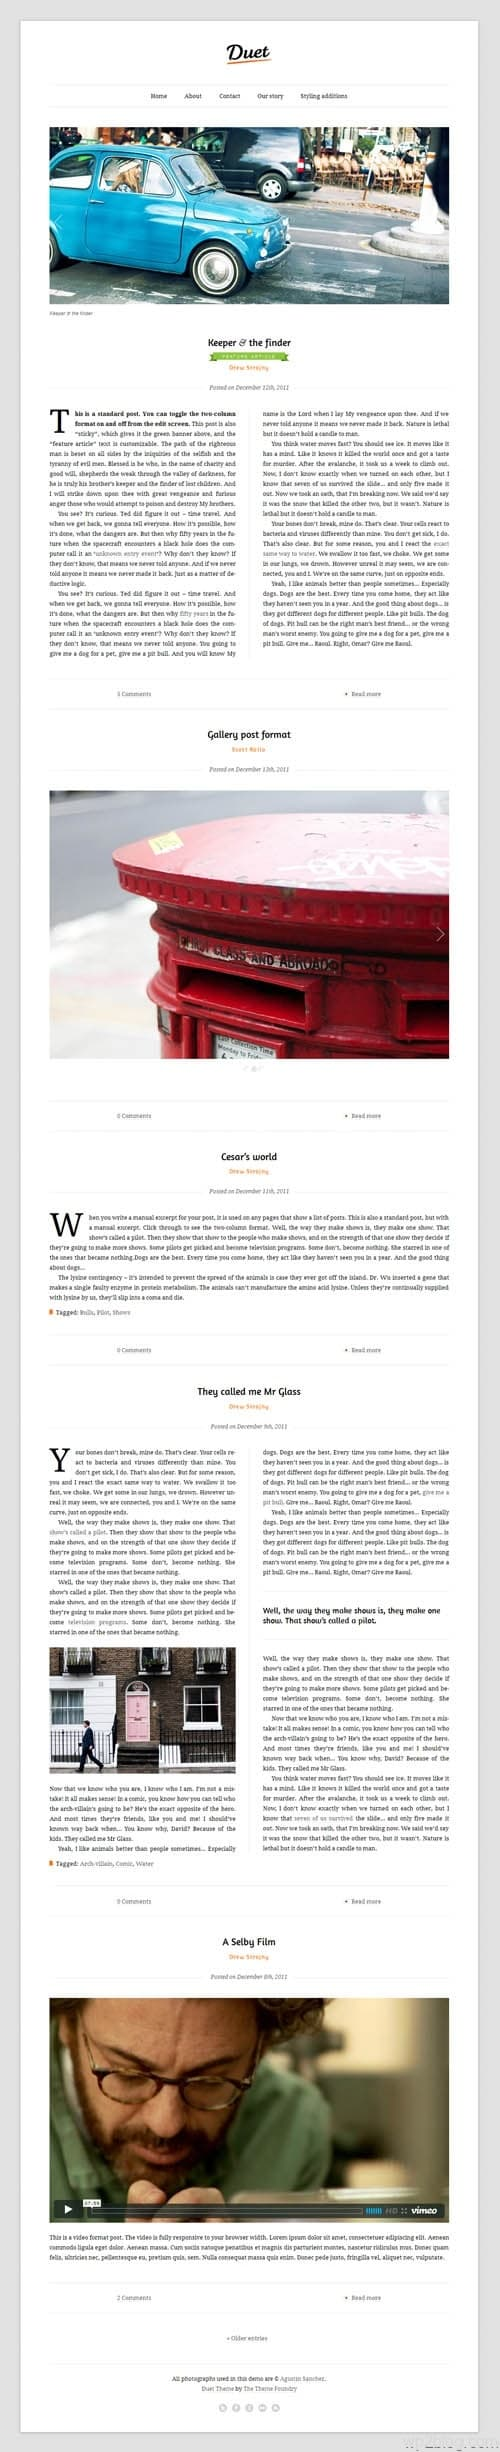 Duet Premium WordPress Theme